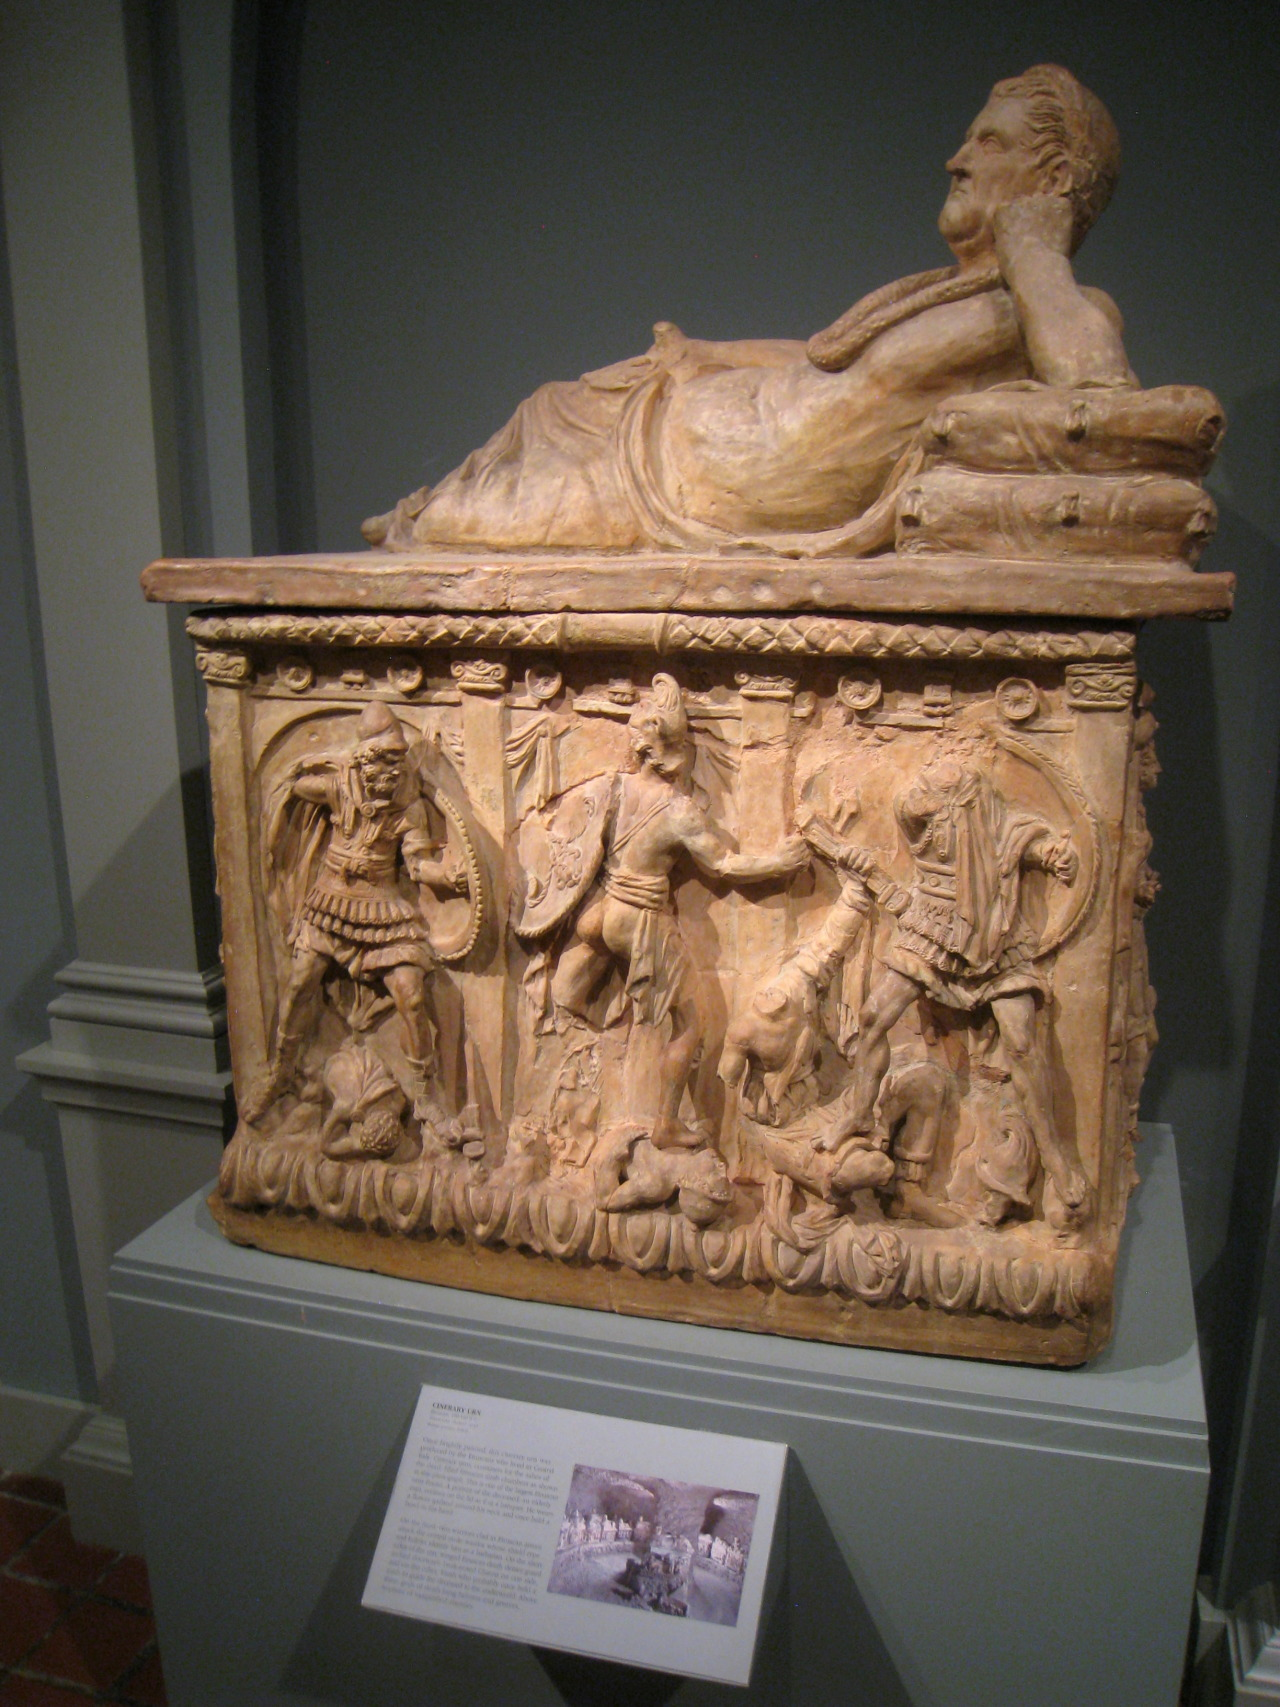 Ancient Etruscan Cinerary Urn, mid-2nd century BC, terracotta. Courtesy & currently located at the Worcester Art Museum, Massachusetts, USA. Photo taken by Daderot